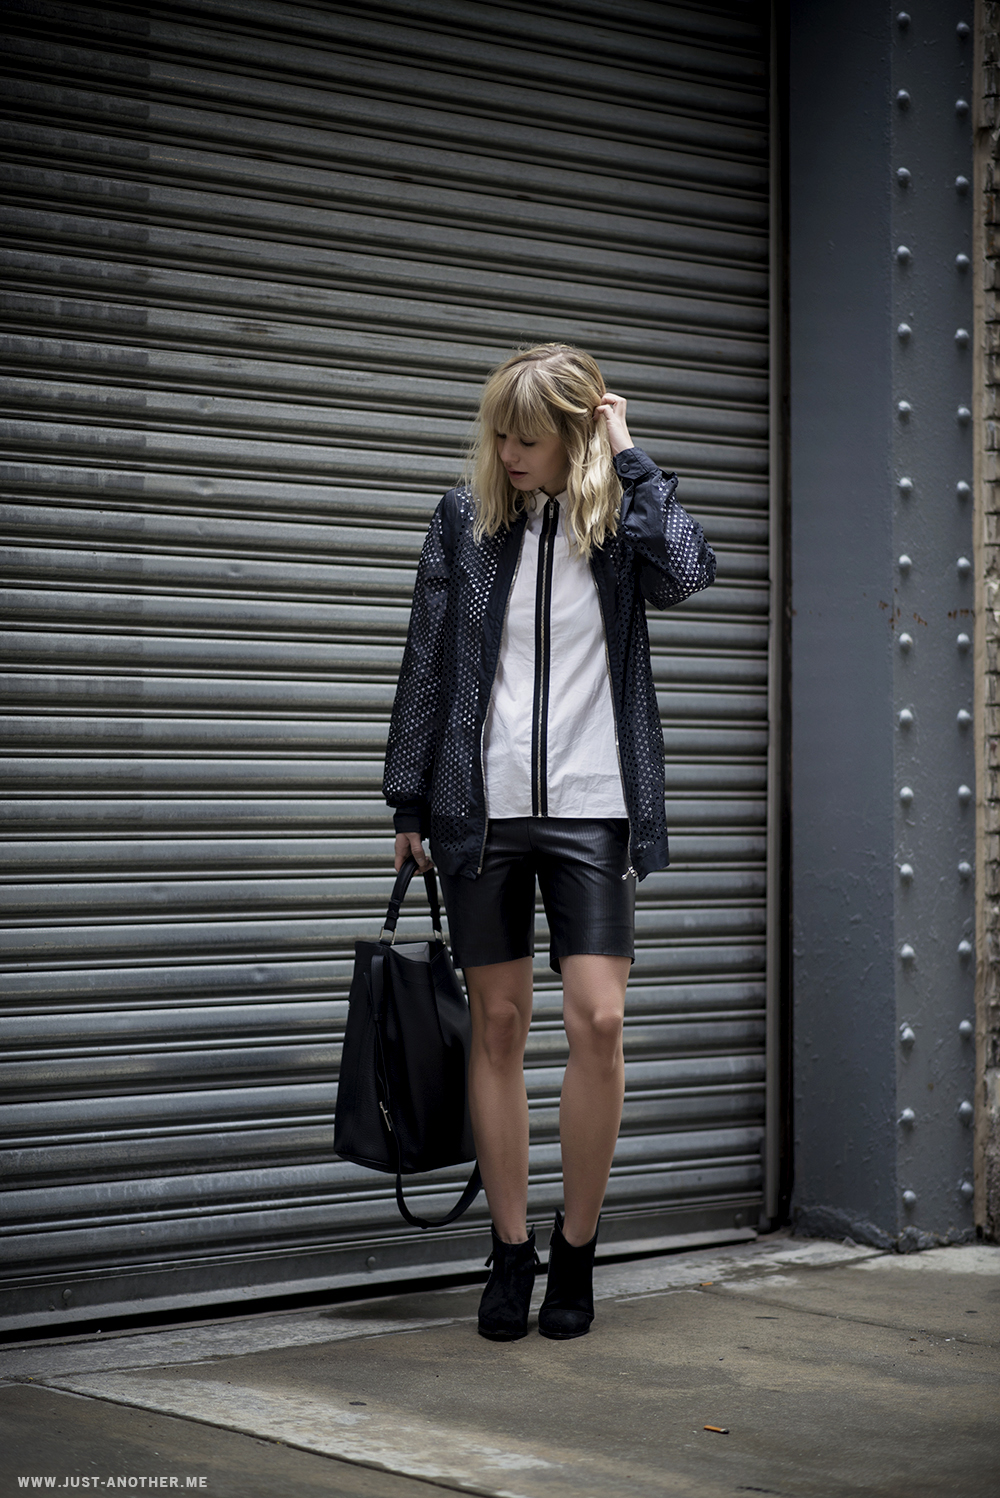 ALEXANDER WANG x H&M - Just Another Fashion Blog